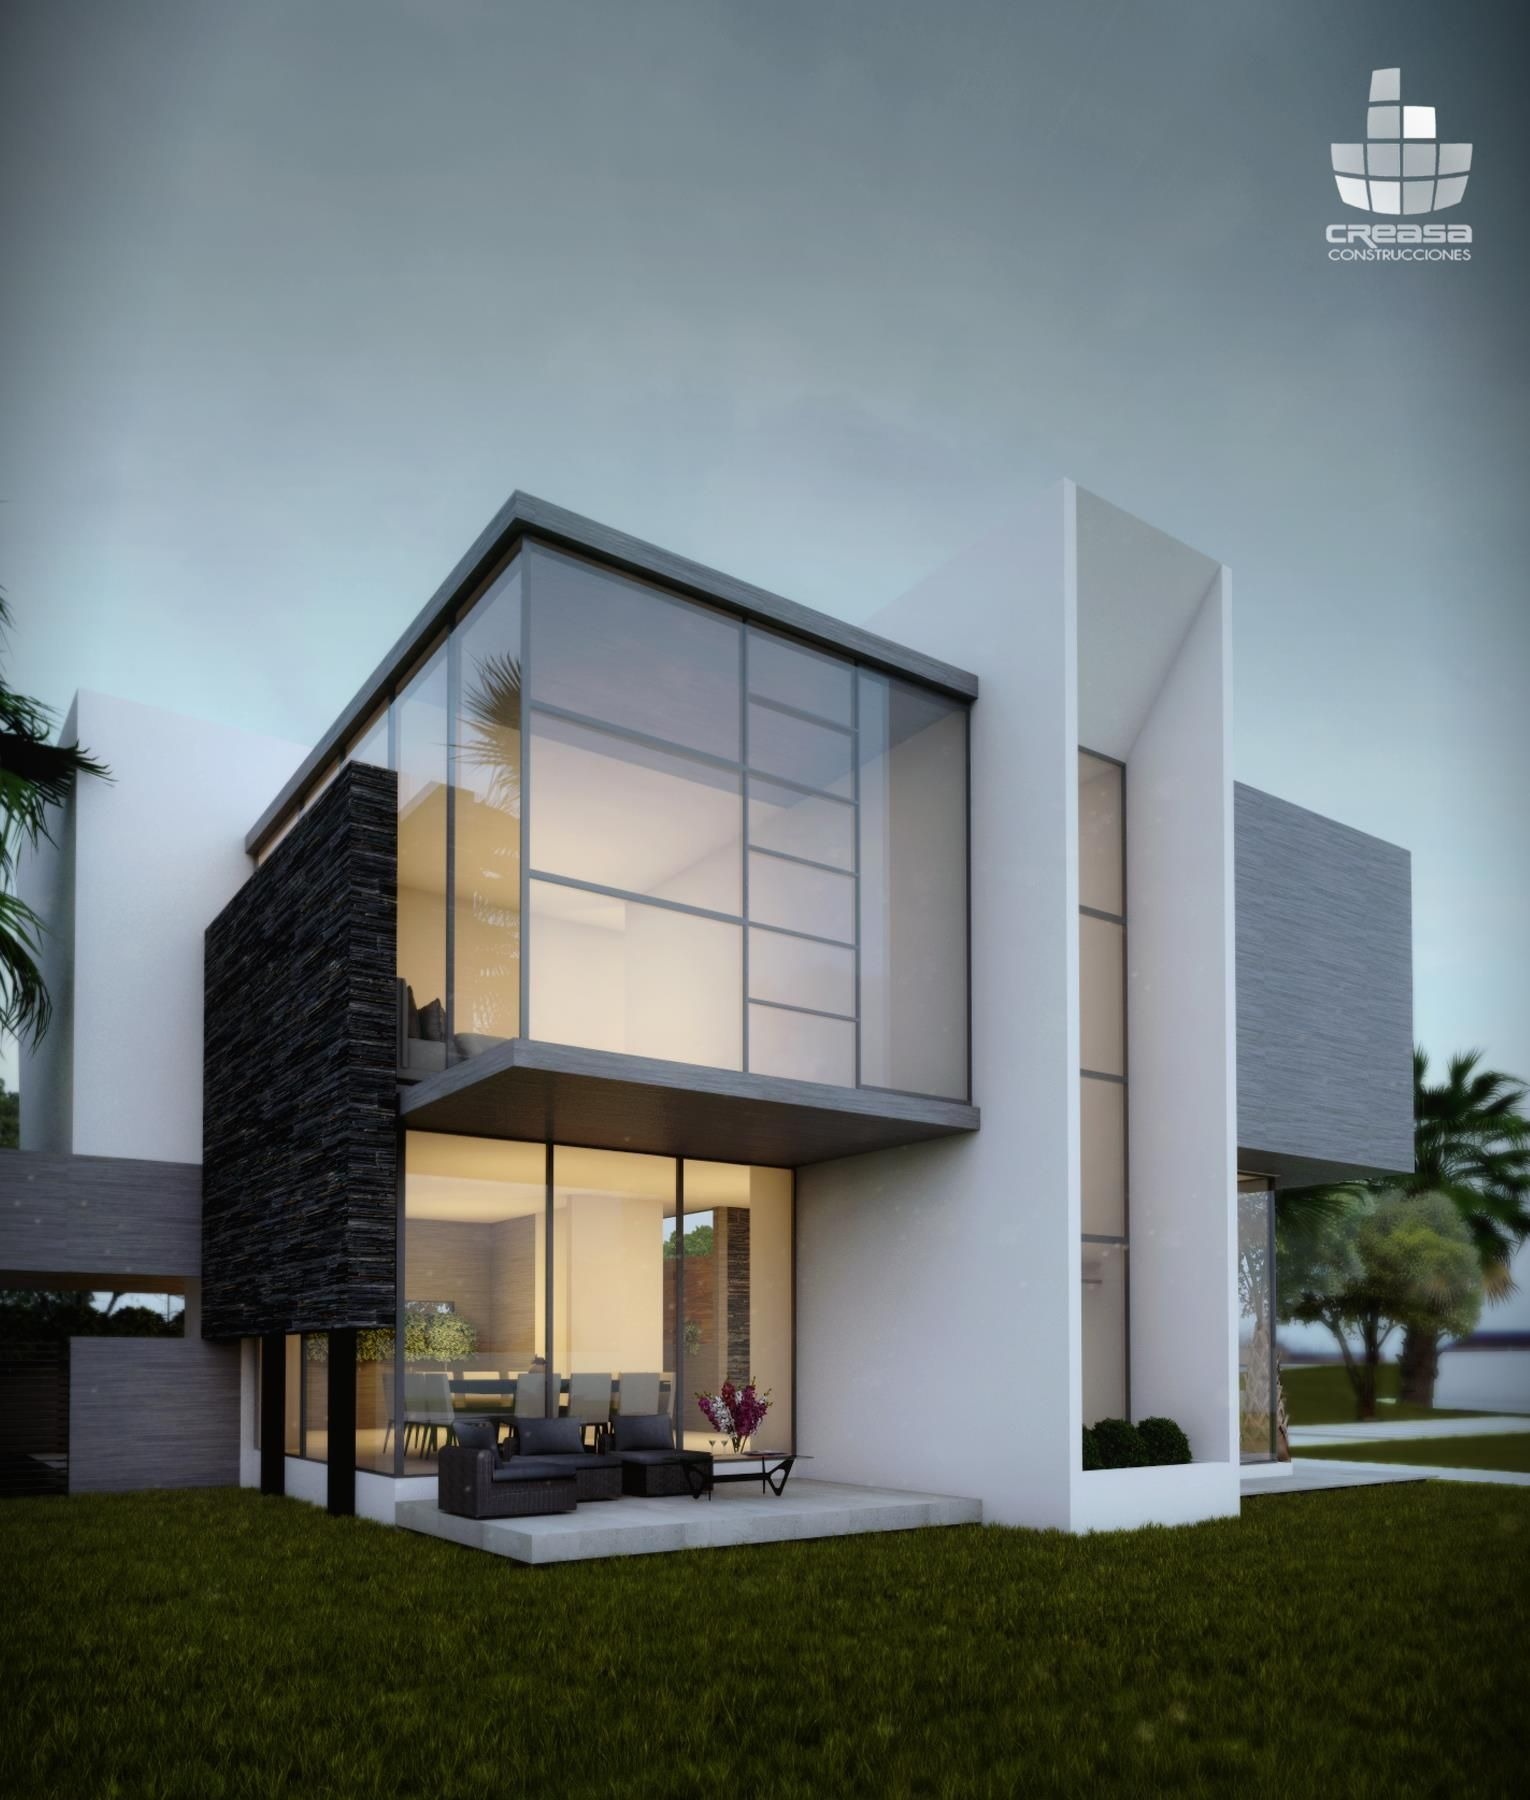 Creasa modern architecture pinterest villas house for Modern house layout plans